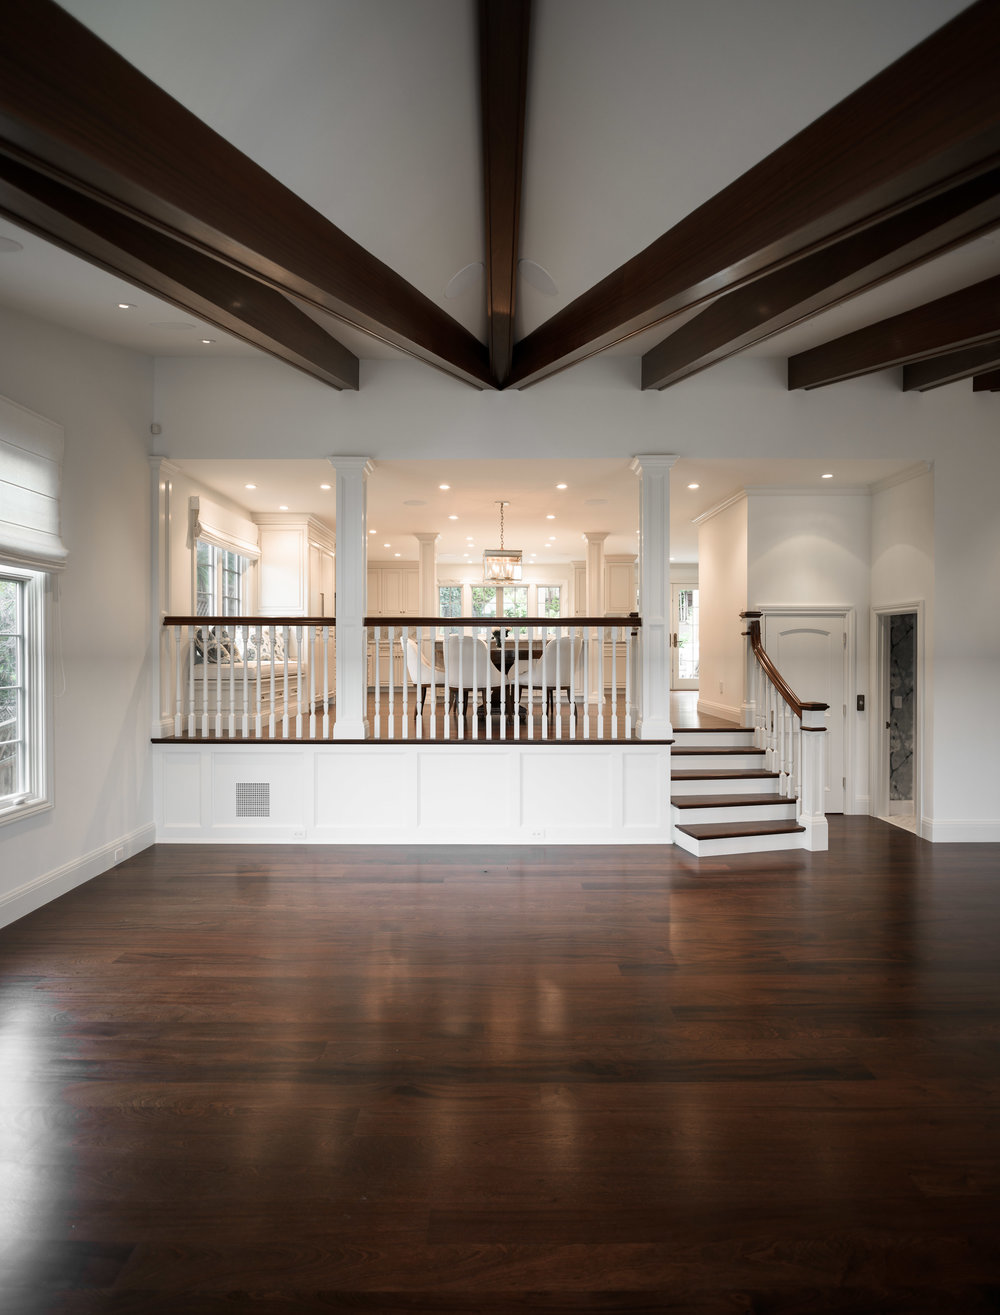 8555_Hillcrest_Rd_San_Carlos_Residential_Architecture_Photography-Pano.jpg